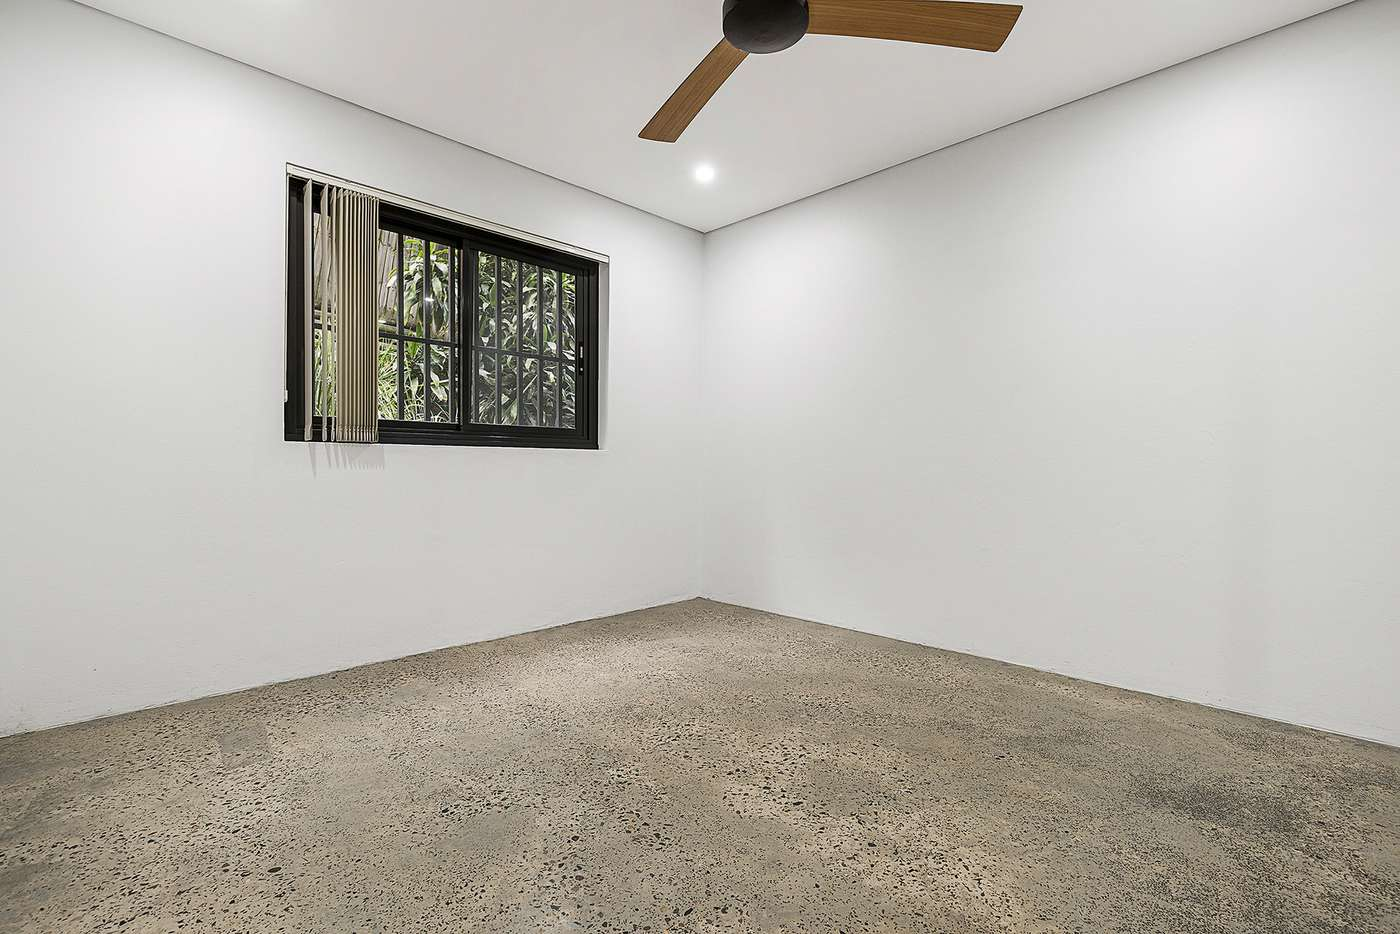 Fifth view of Homely apartment listing, 34/1a Leeton Avenue, Coogee NSW 2034